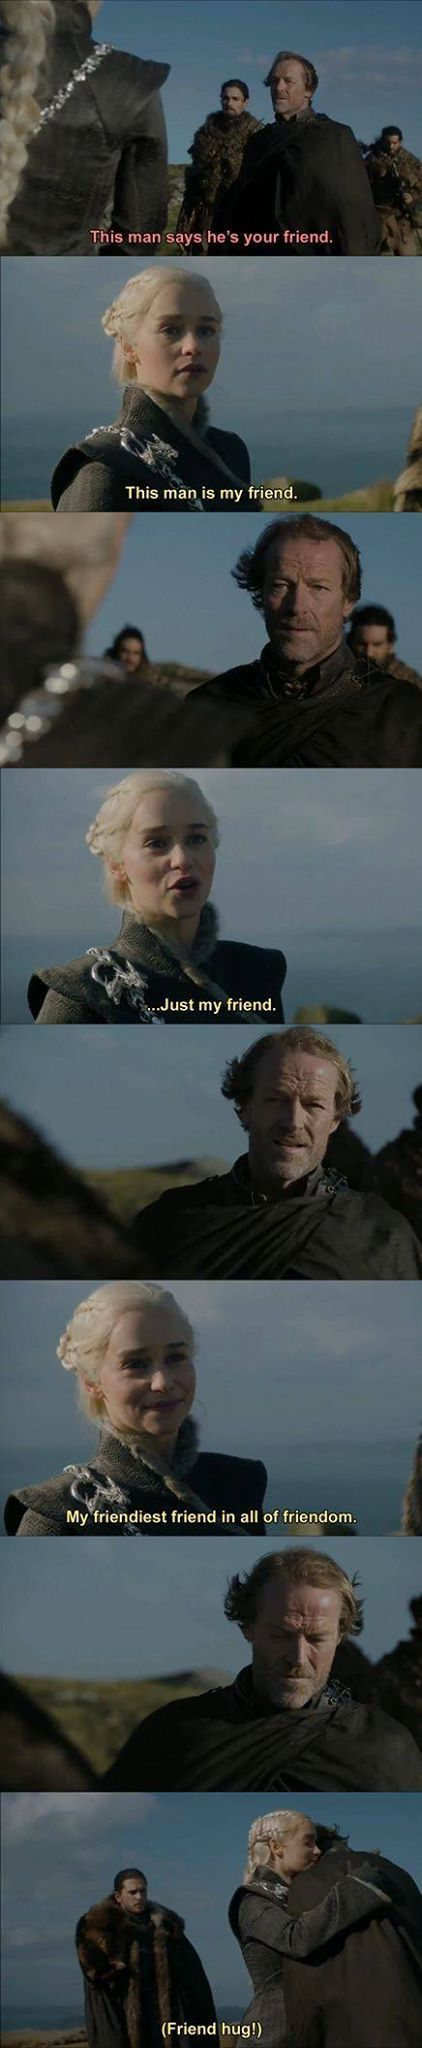 Ser Jorah - my friendiest friend in all of friendom, Game of Thrones.